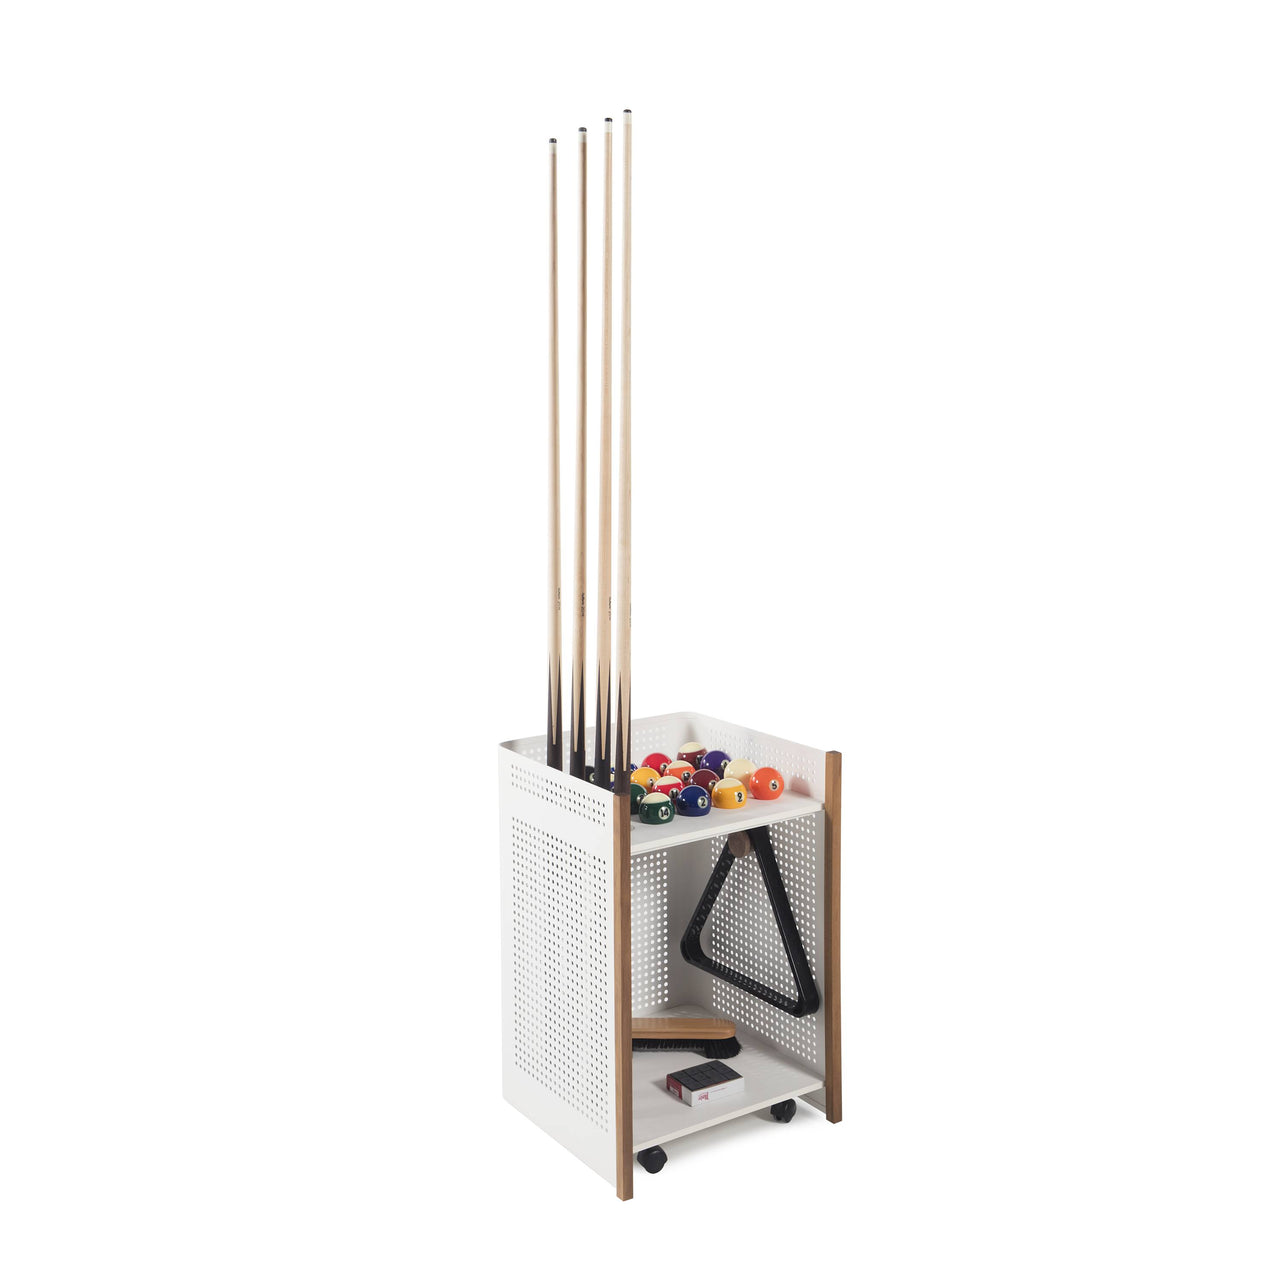 Diagonal Outdoor Floor Cue Rack: White